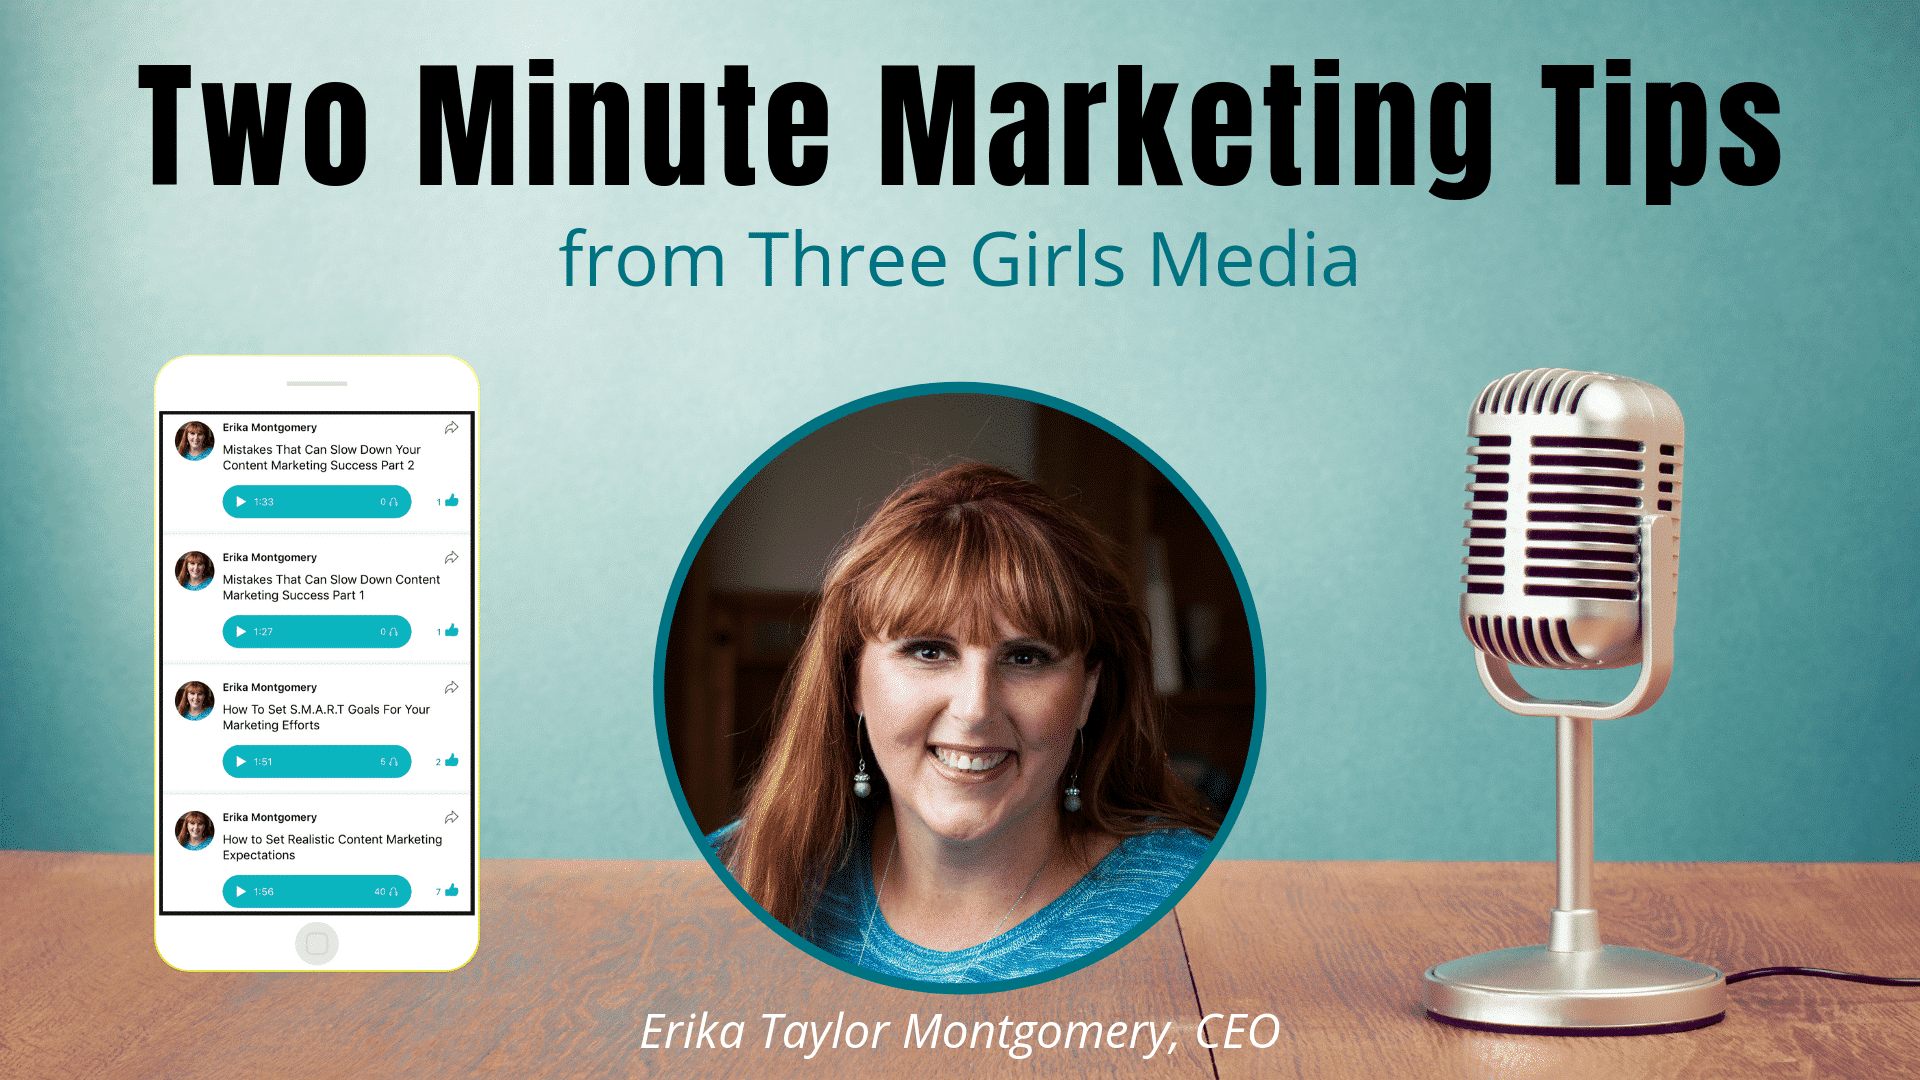 Two Minute Marketing Tips Social Media Marketing Strategies for Facebook